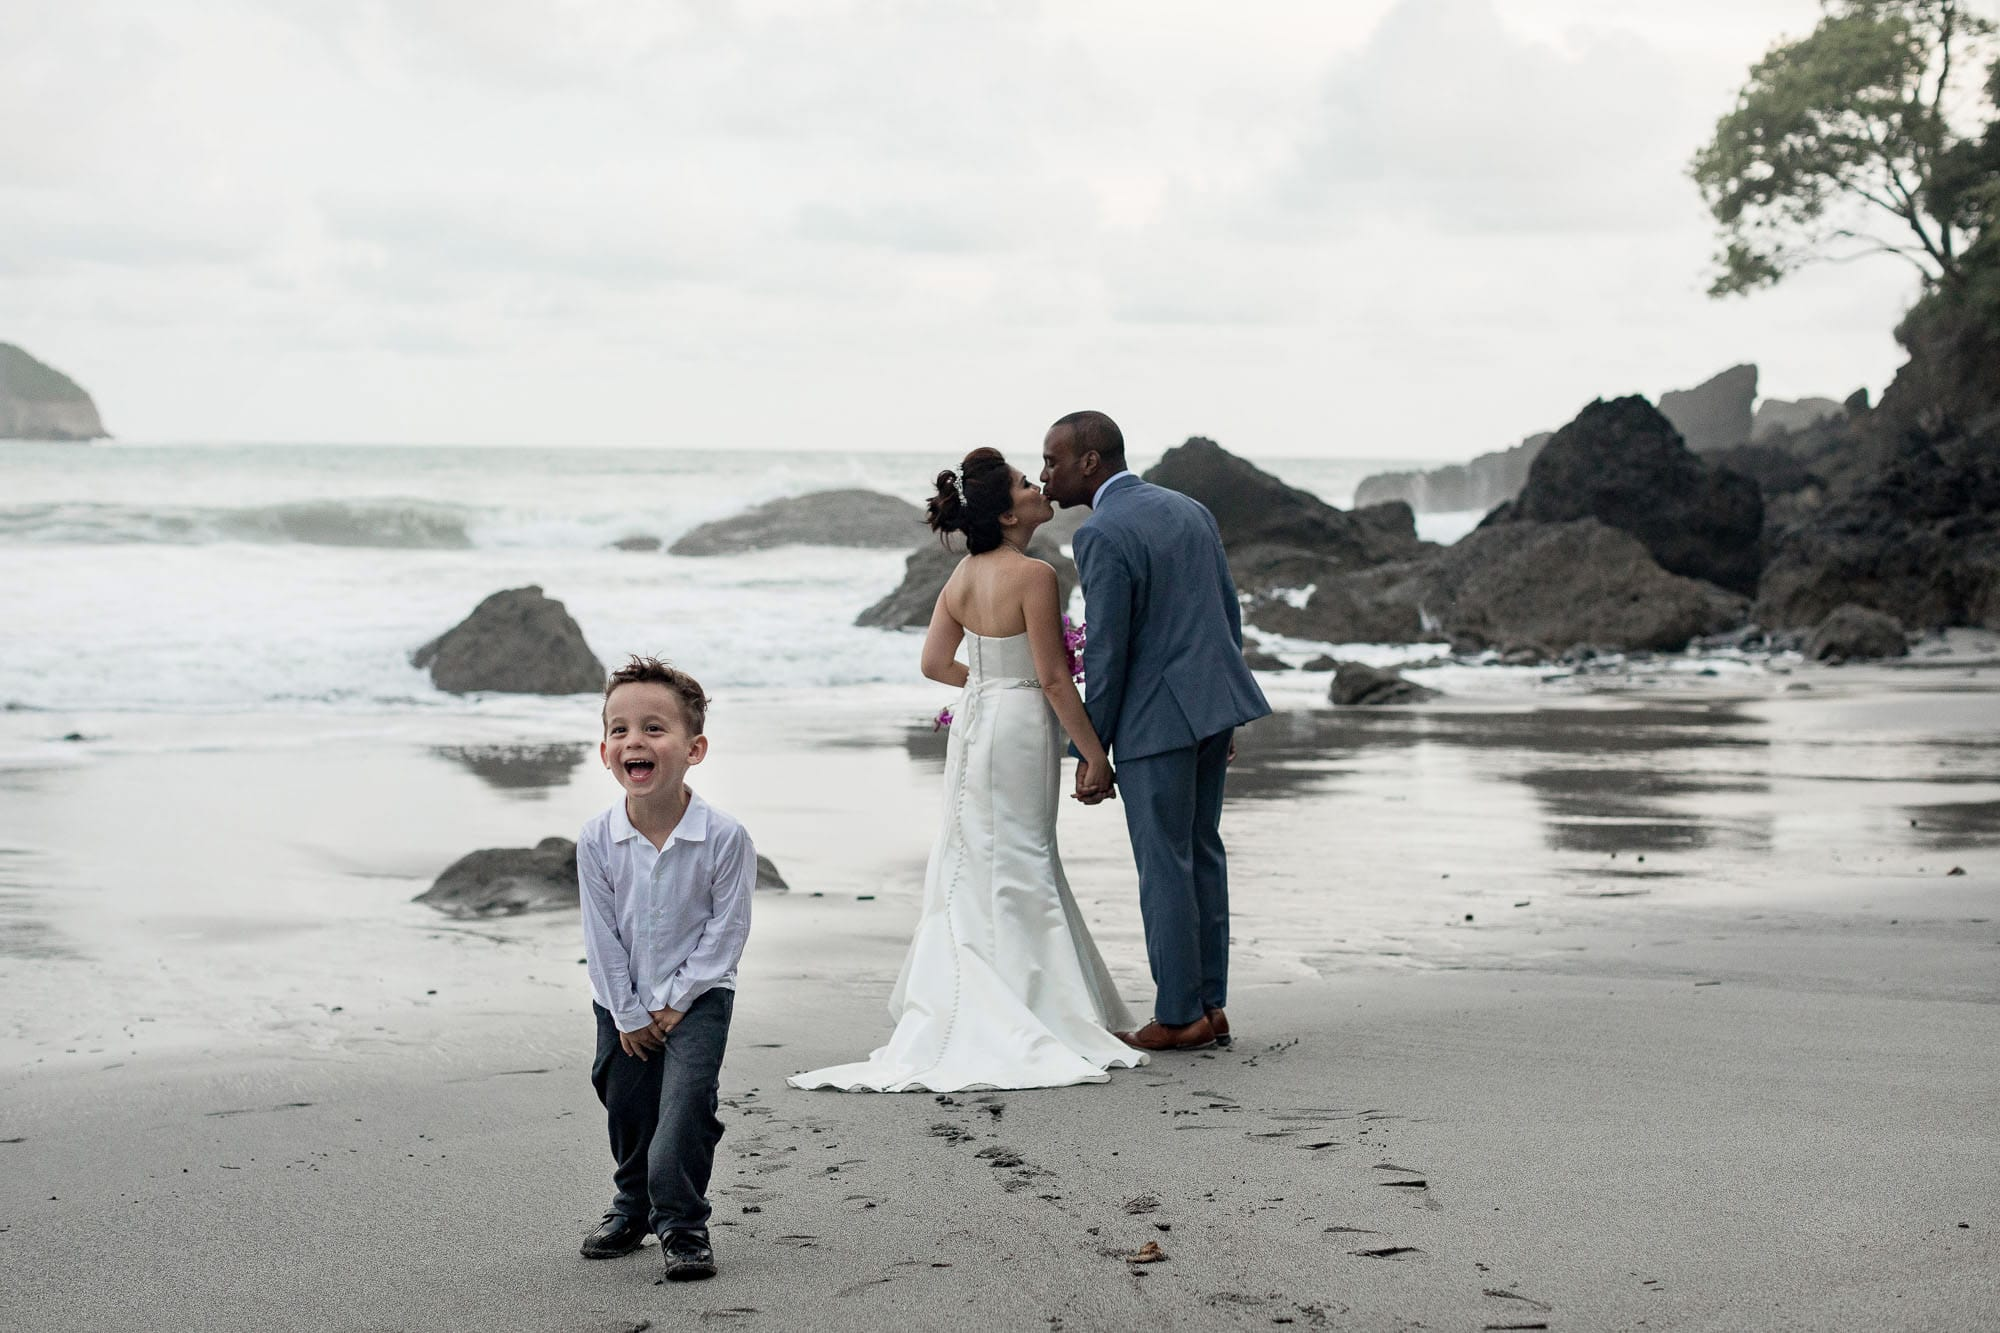 The bride and groom sneak a kiss on the beach and scandalize a little wedding guest!